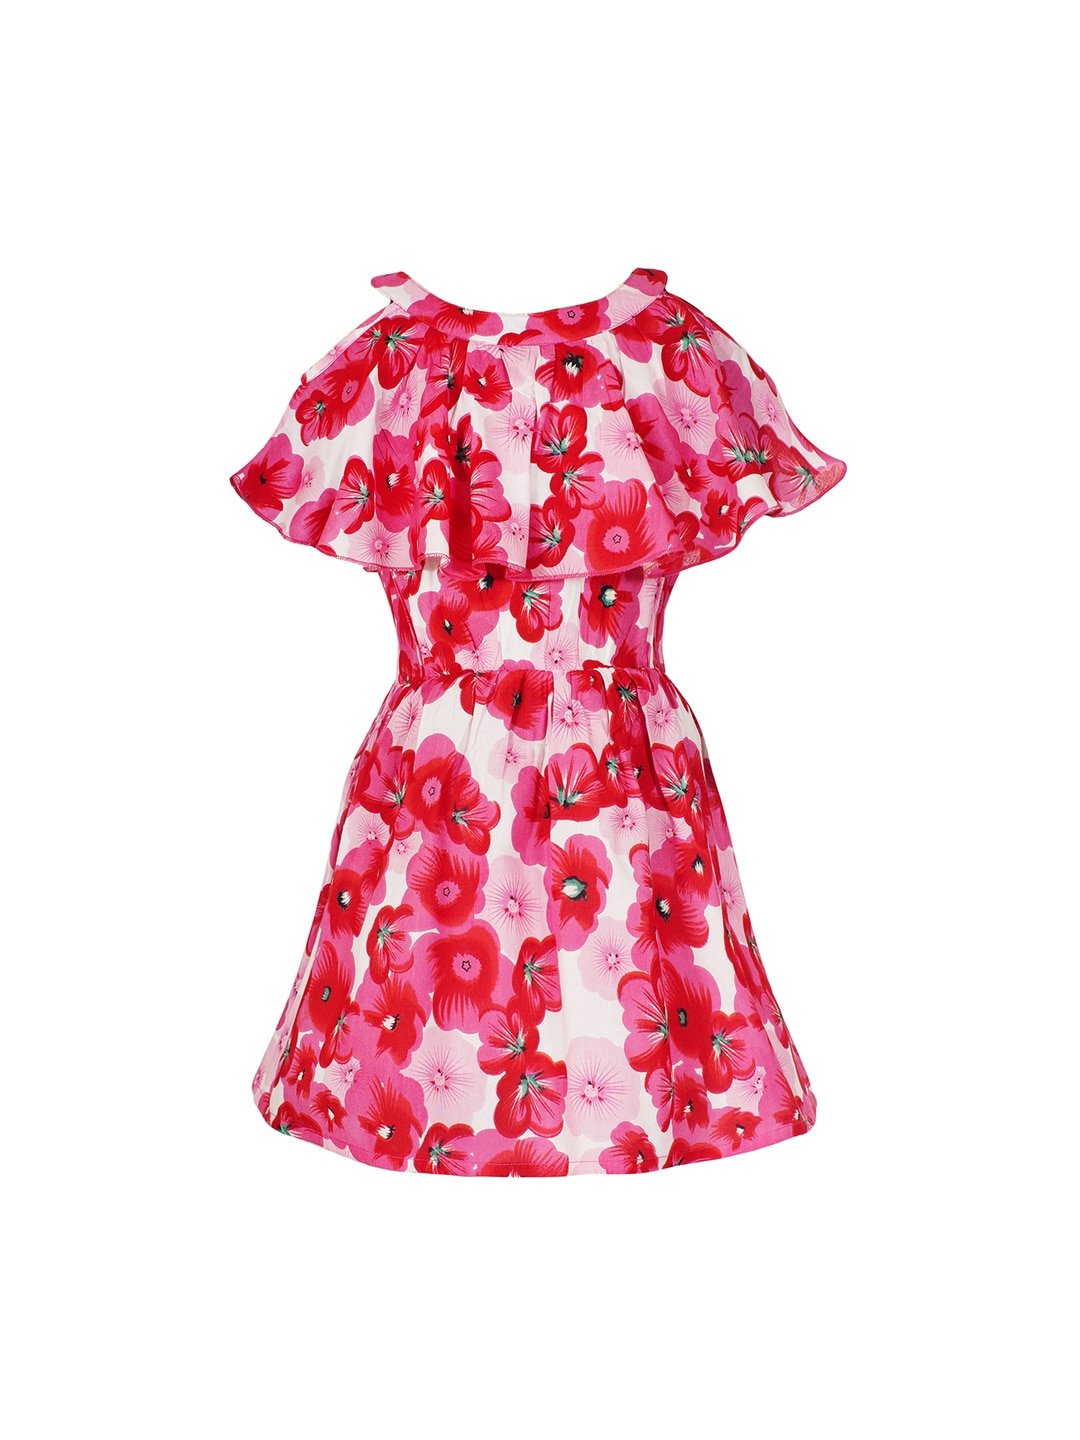 2671a5704c Girls Clothes - Buy Girls Clothing Online in India